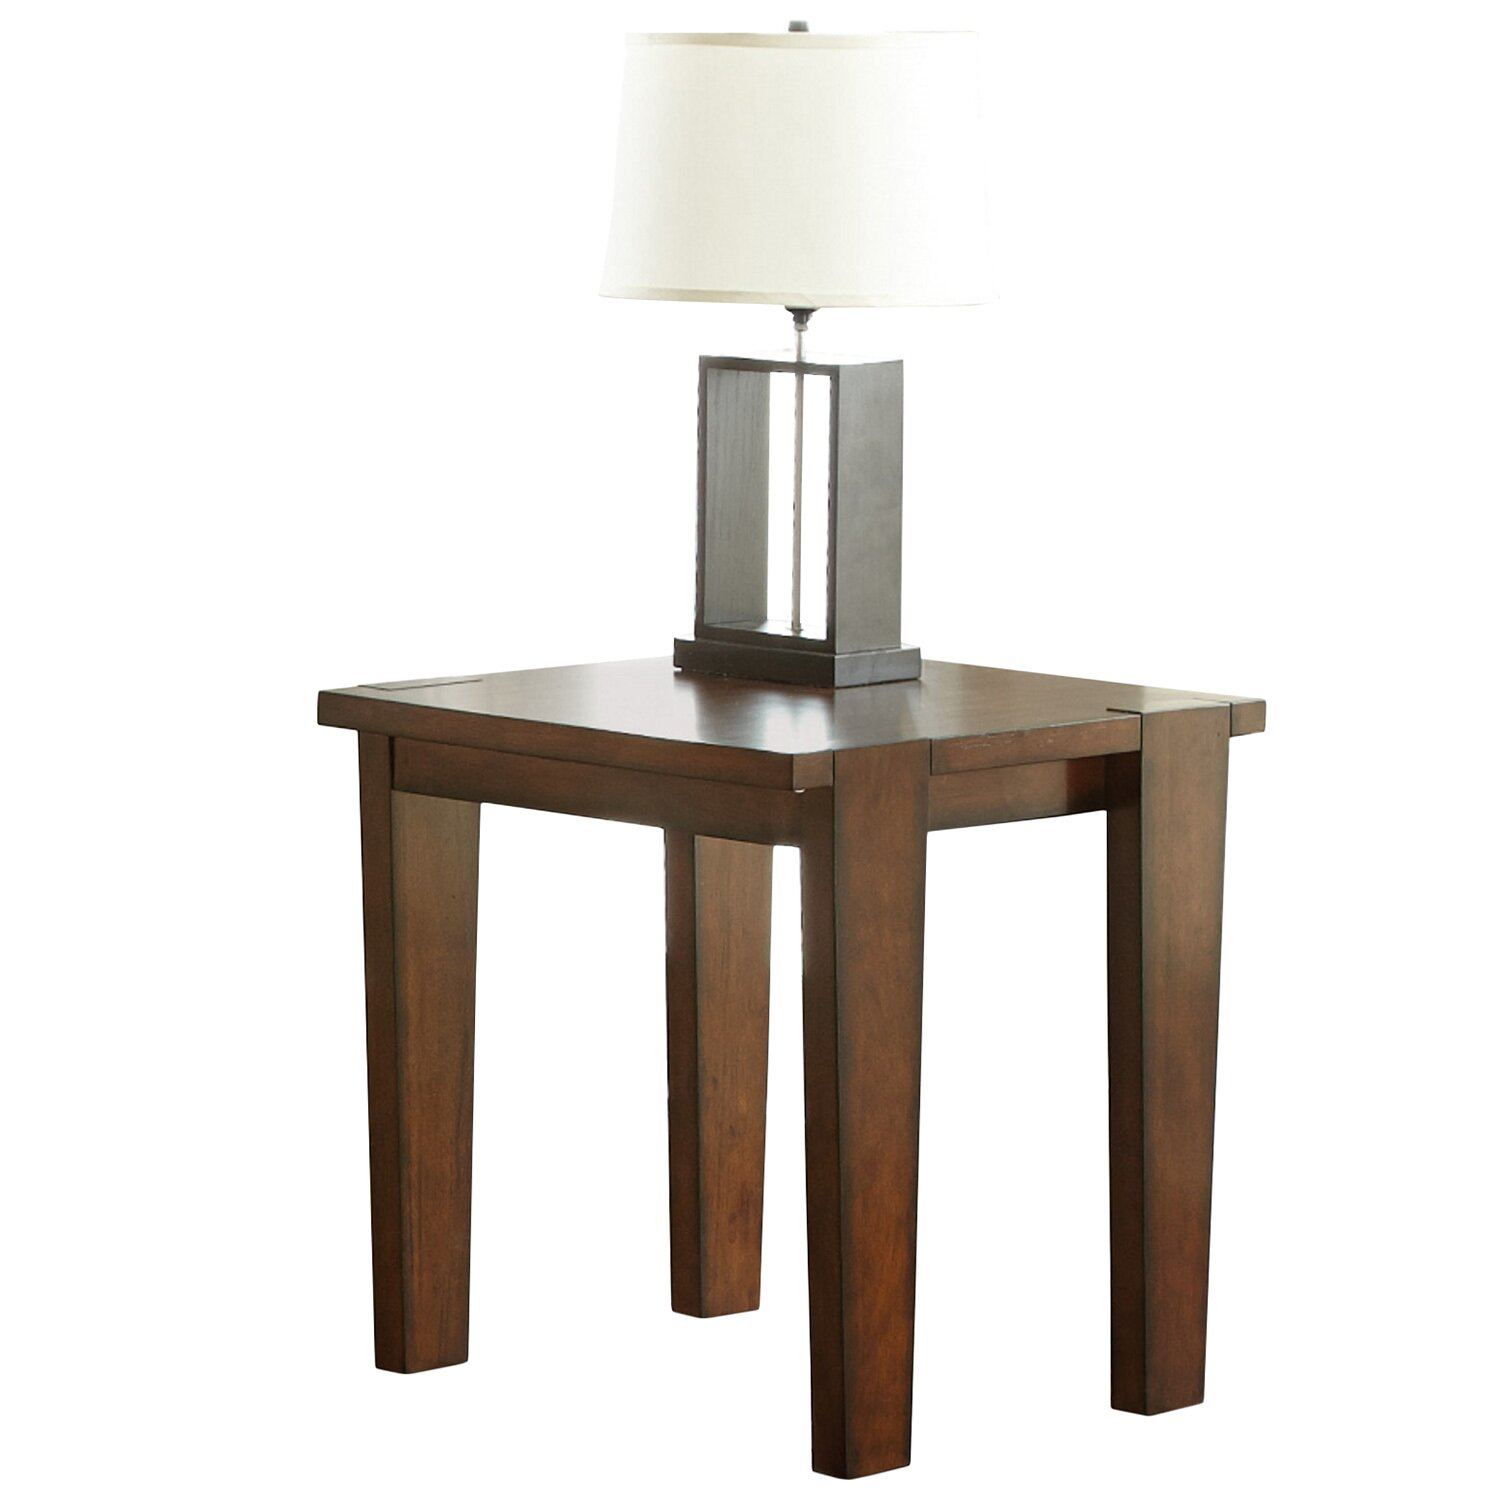 Loon peak strasburg end table reviews for Regulation 85 table a